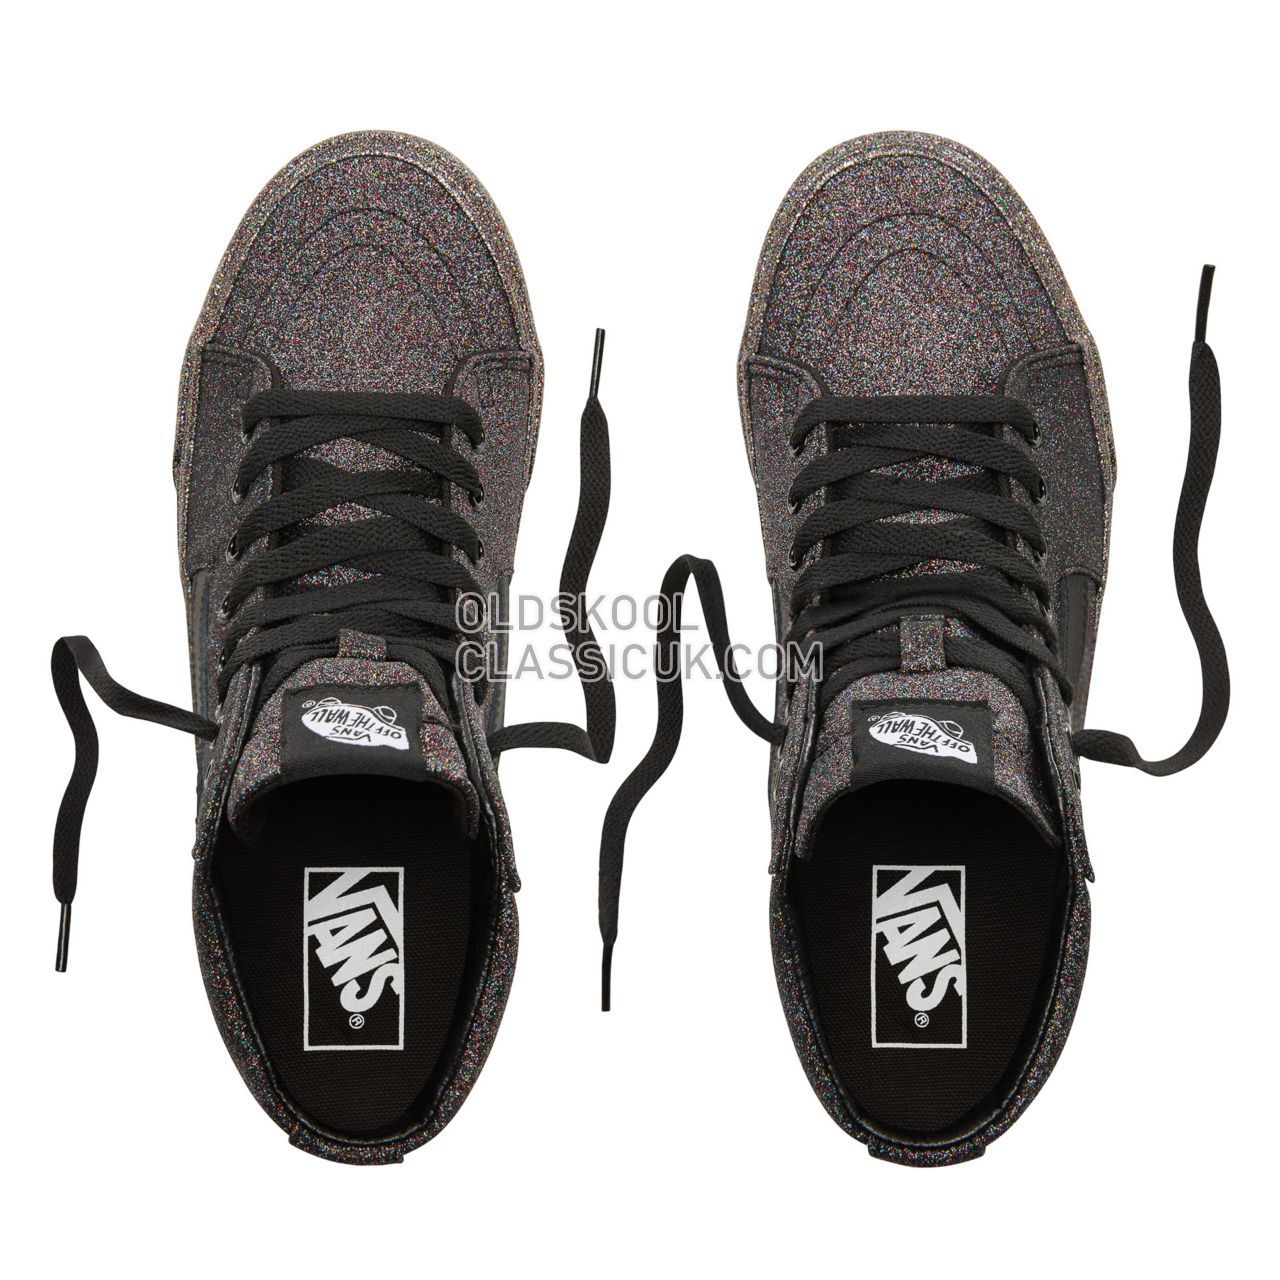 Vans Rainbow Glitter Sk8-Hi Sneakers Womens (Rainbow Glitter) Black/Black VN0A38GEUKN Shoes